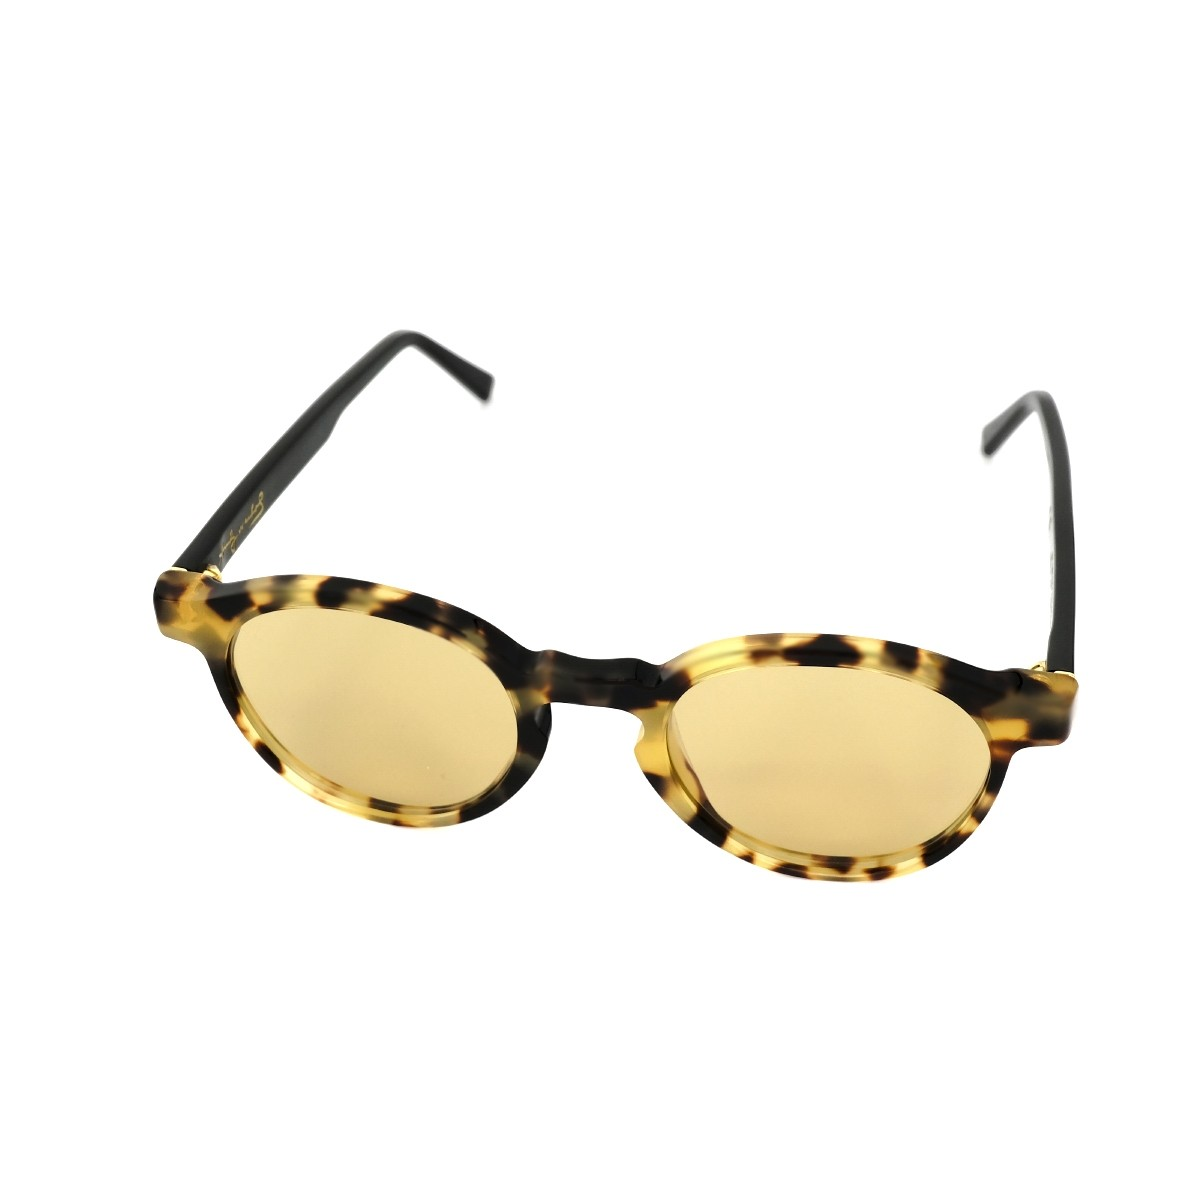 Super Iconic Tortoise Andy Wharol collection, 124,00 €, Occhiali Super Marrone a forma Ovale